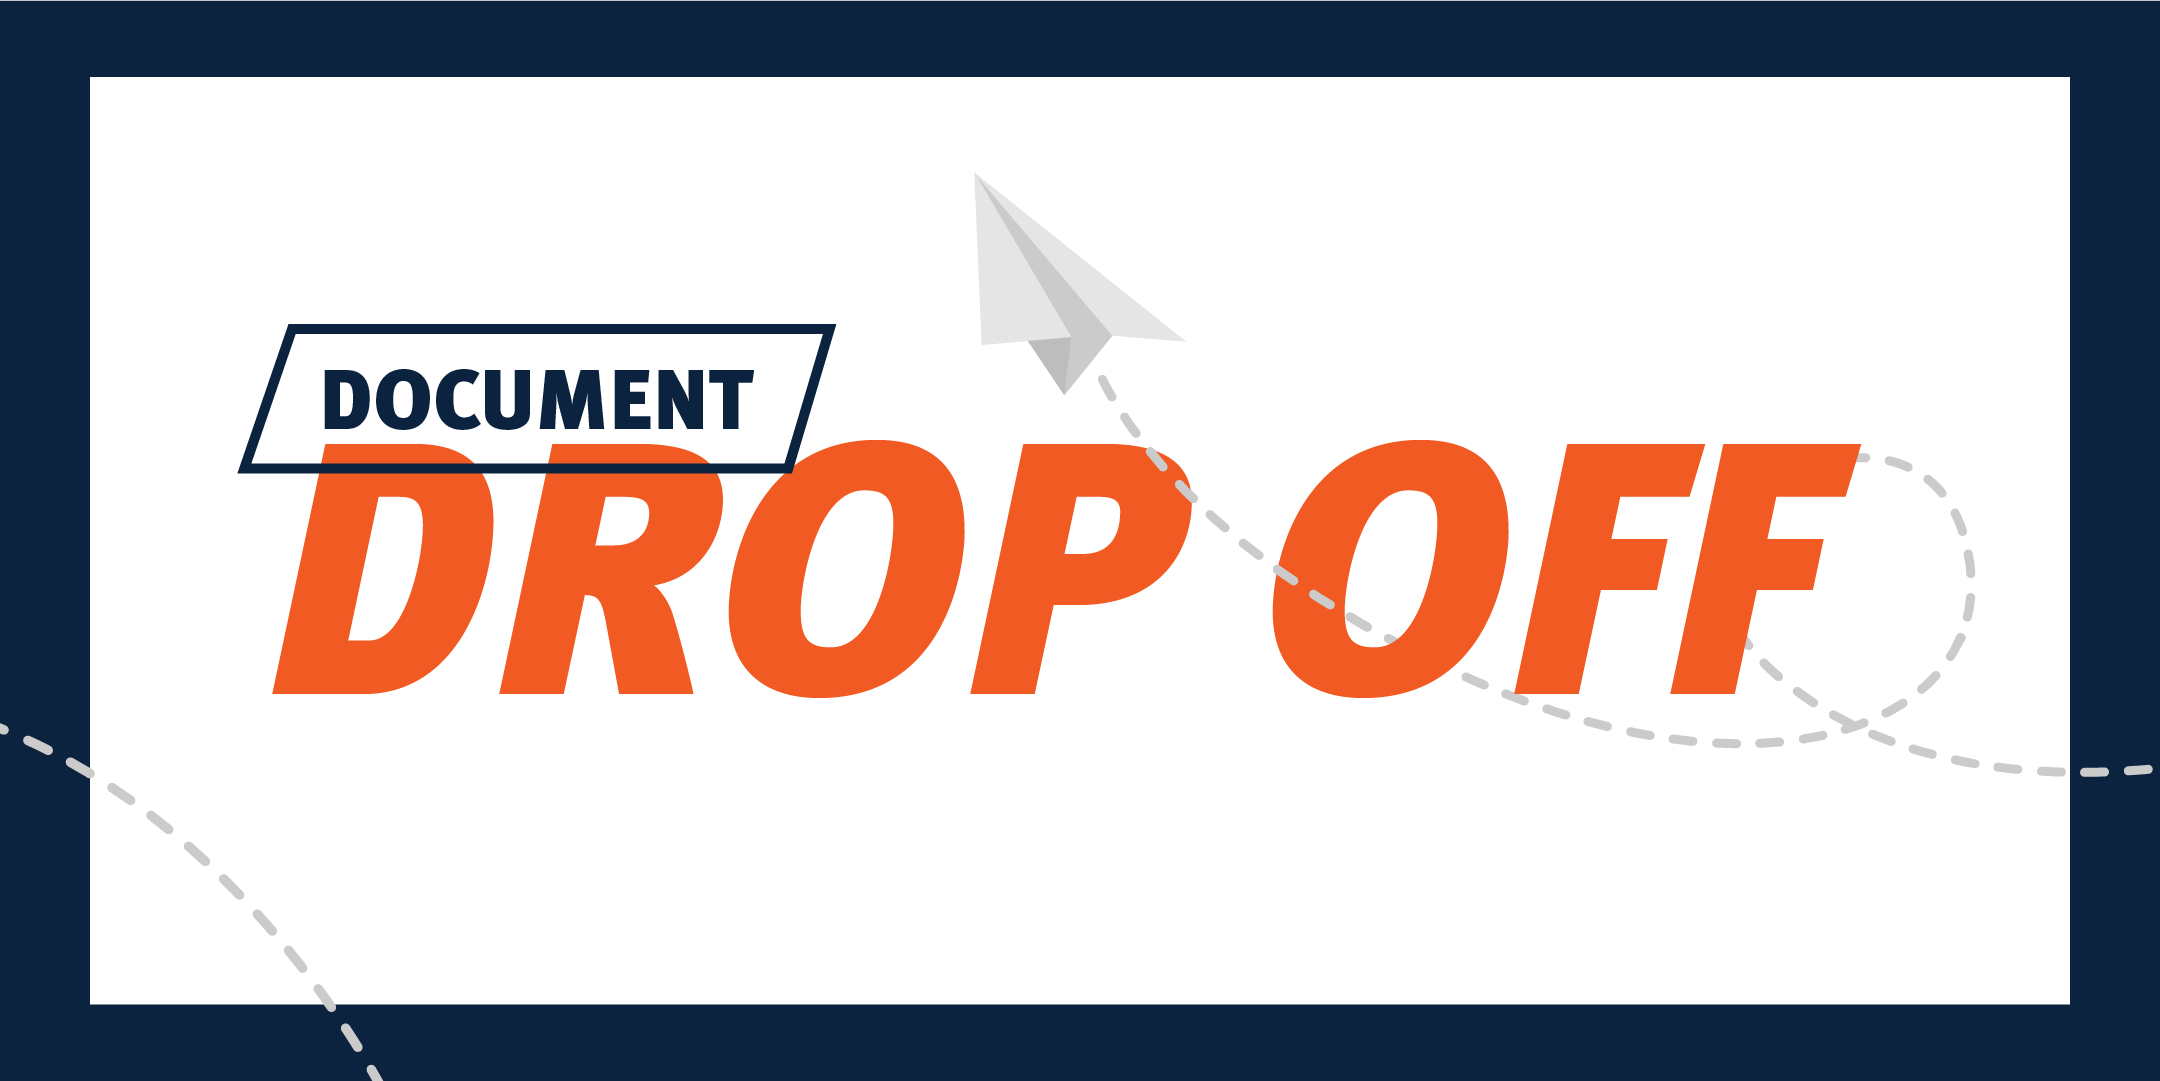 Document Drop Off